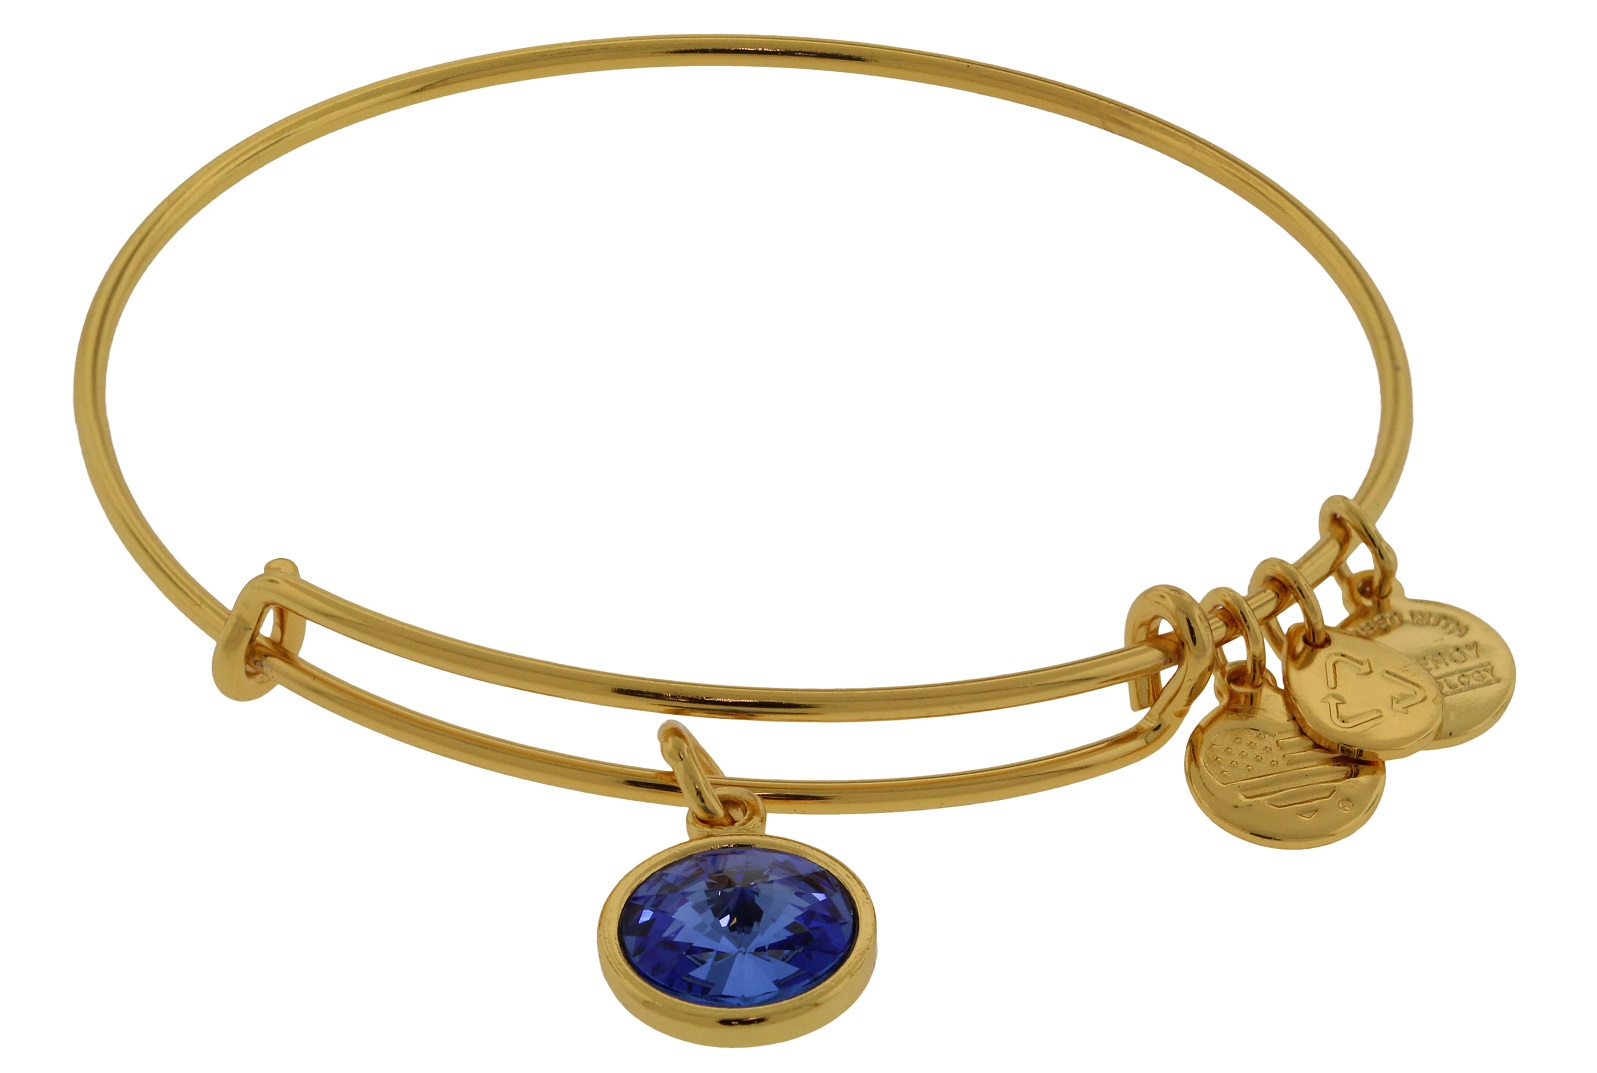 Alex and Ani September Birthstone Charm Bangle Bracelet A09EB248G by Alex and Ani